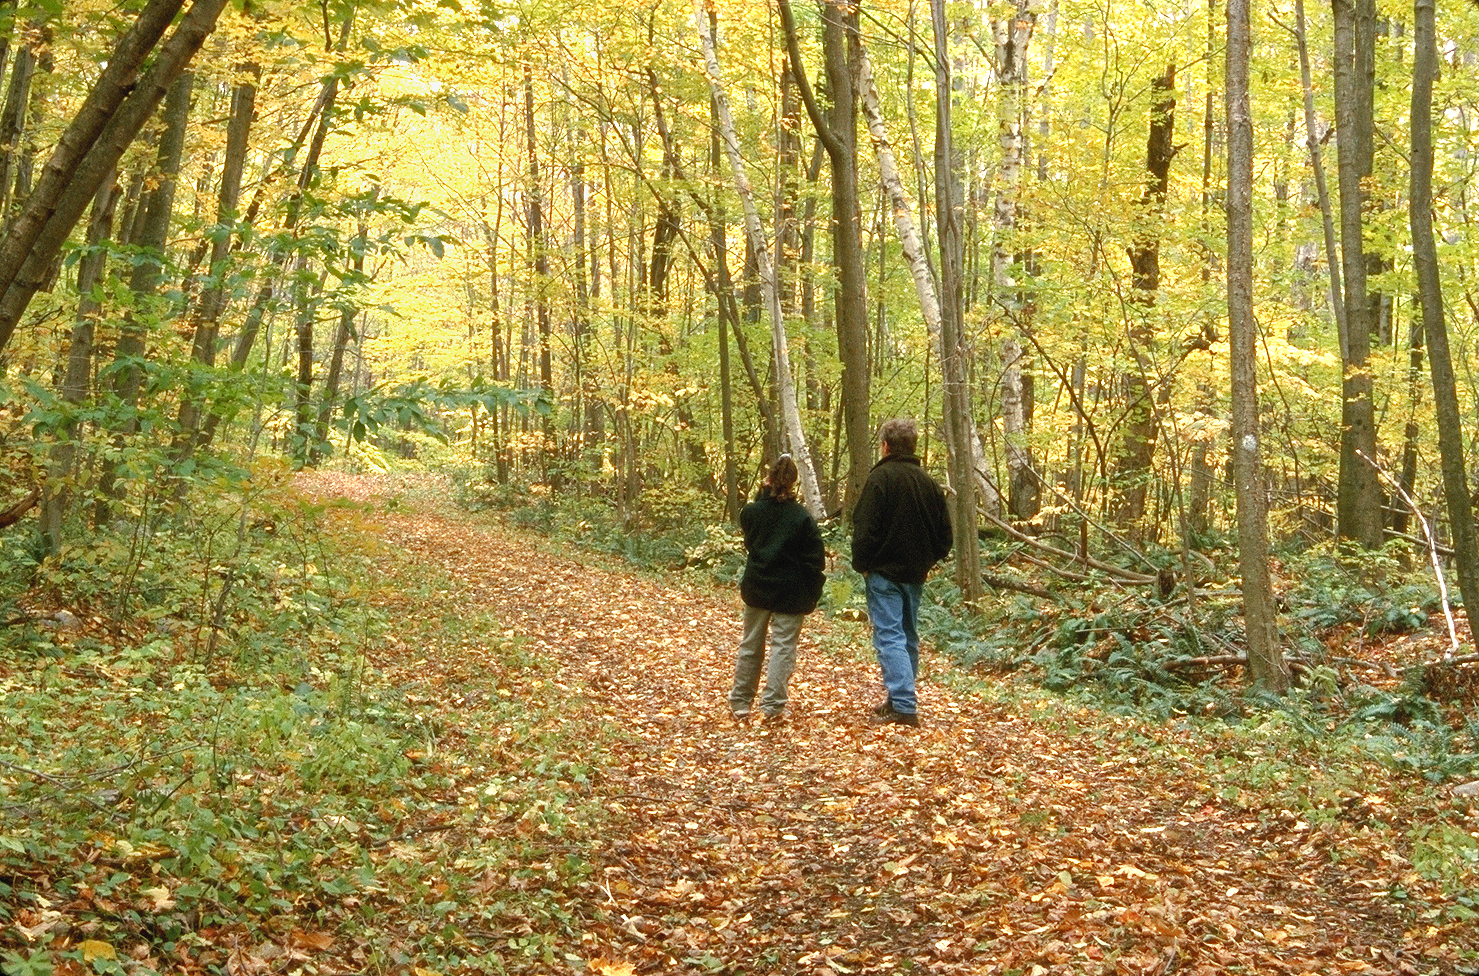 Two people walking down a trail with fall foliage